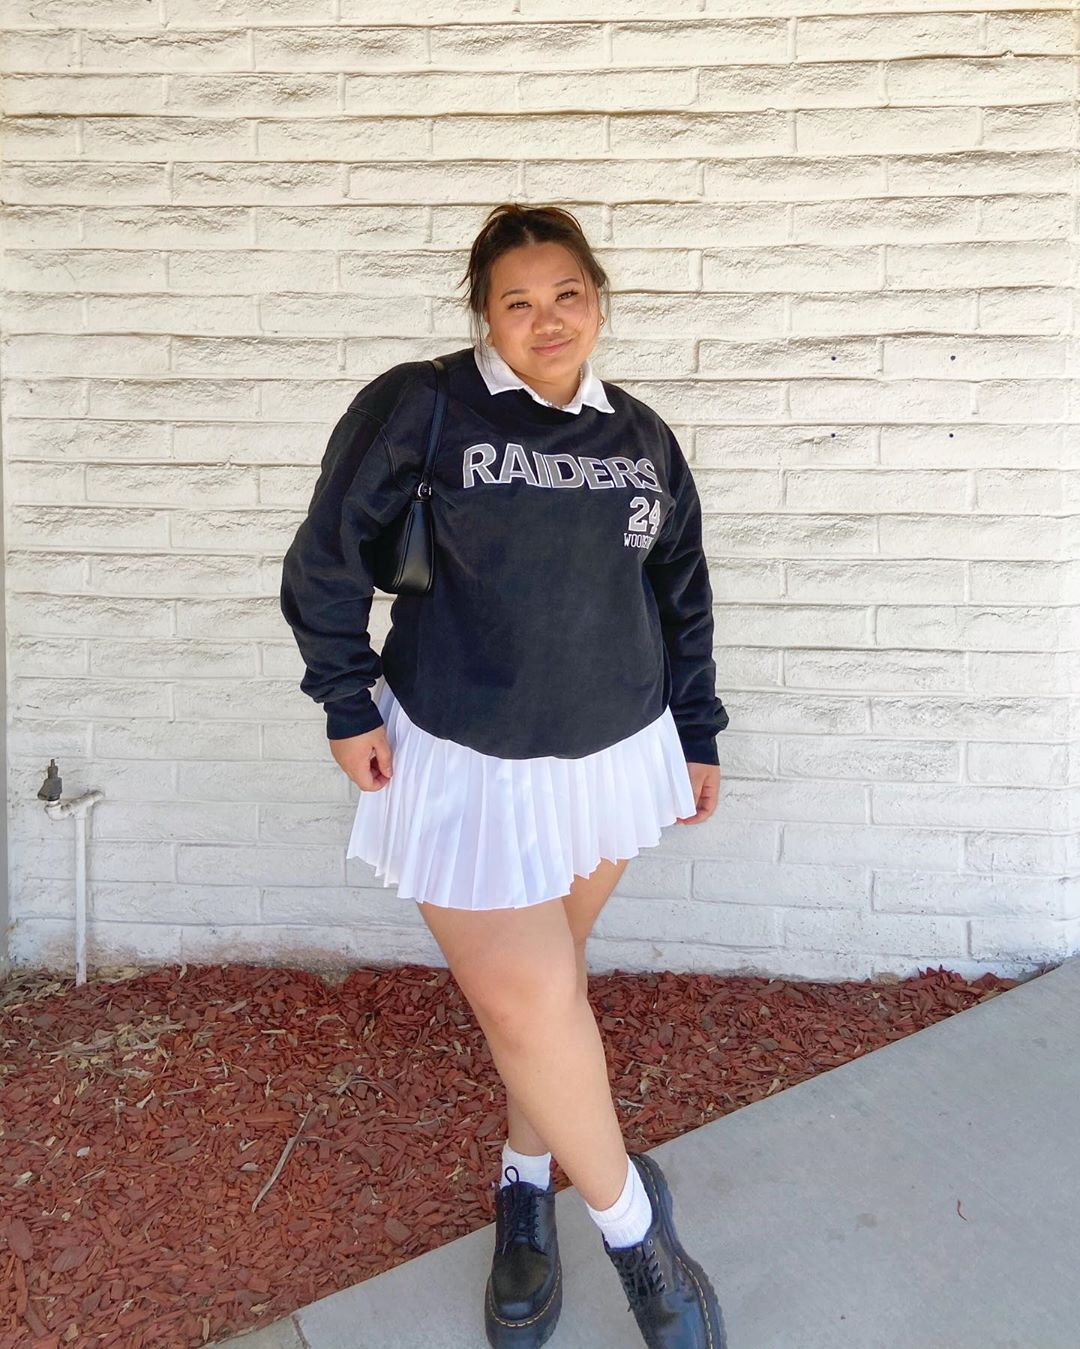 Lauren Licup On Instagram Happy Friday Friends In 2020 Tennis Skirt Outfit Fashion Inspo Outfits Curvy Girl Outfits